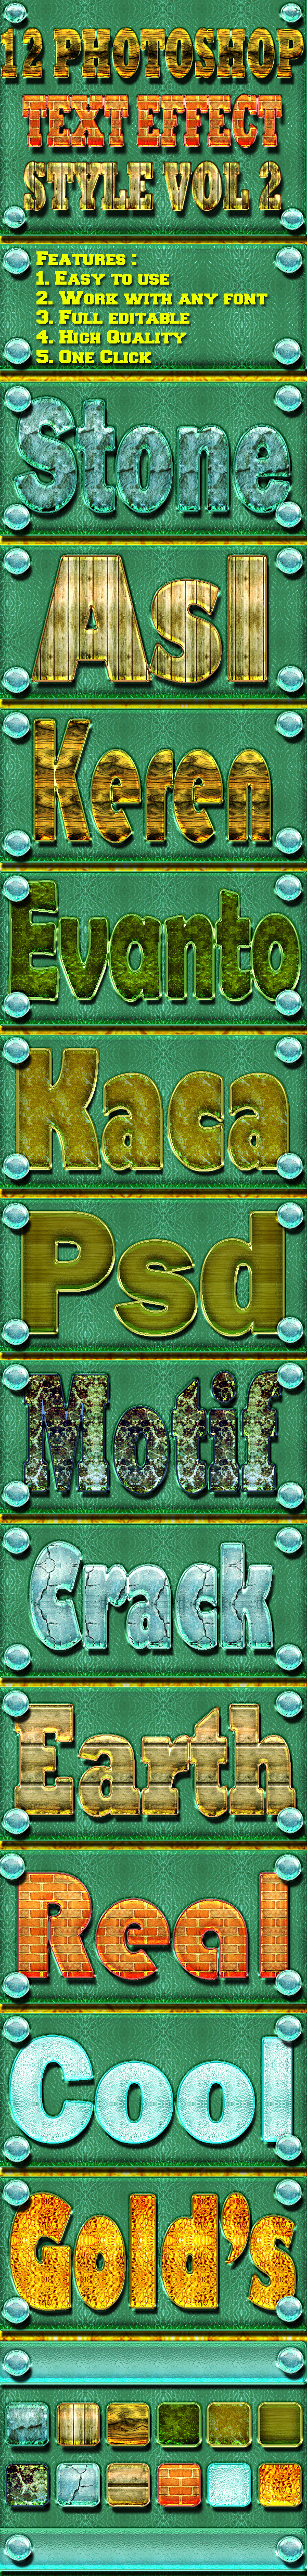 12 Photoshop Text Effect Style Vol 2 - Text Effects Styles